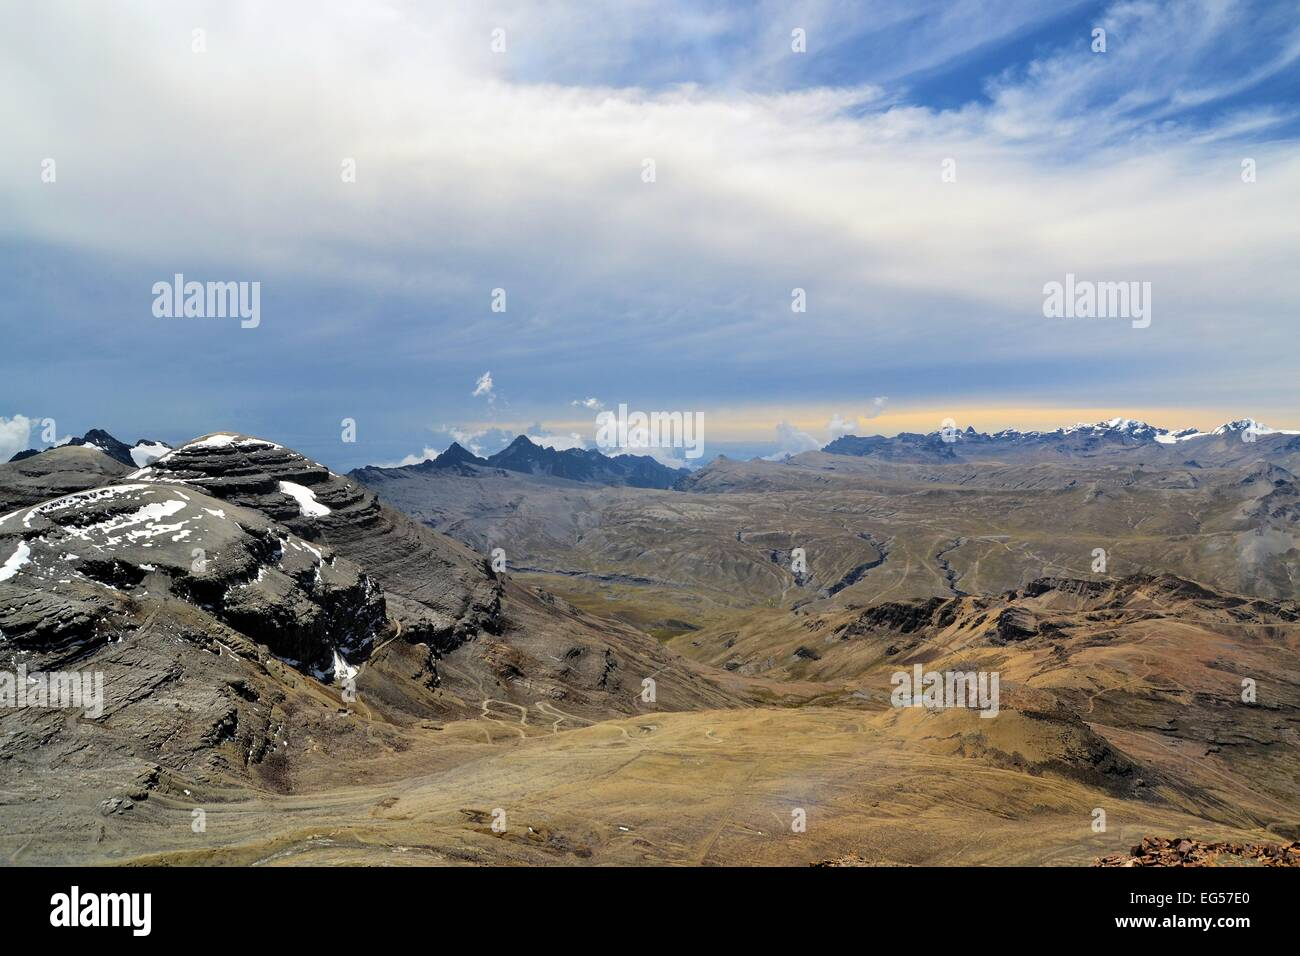 View of Huayna Potosi in Cordillera Real from Chacaltaya Range near La Paz, Bolivian Andes - Stock Image